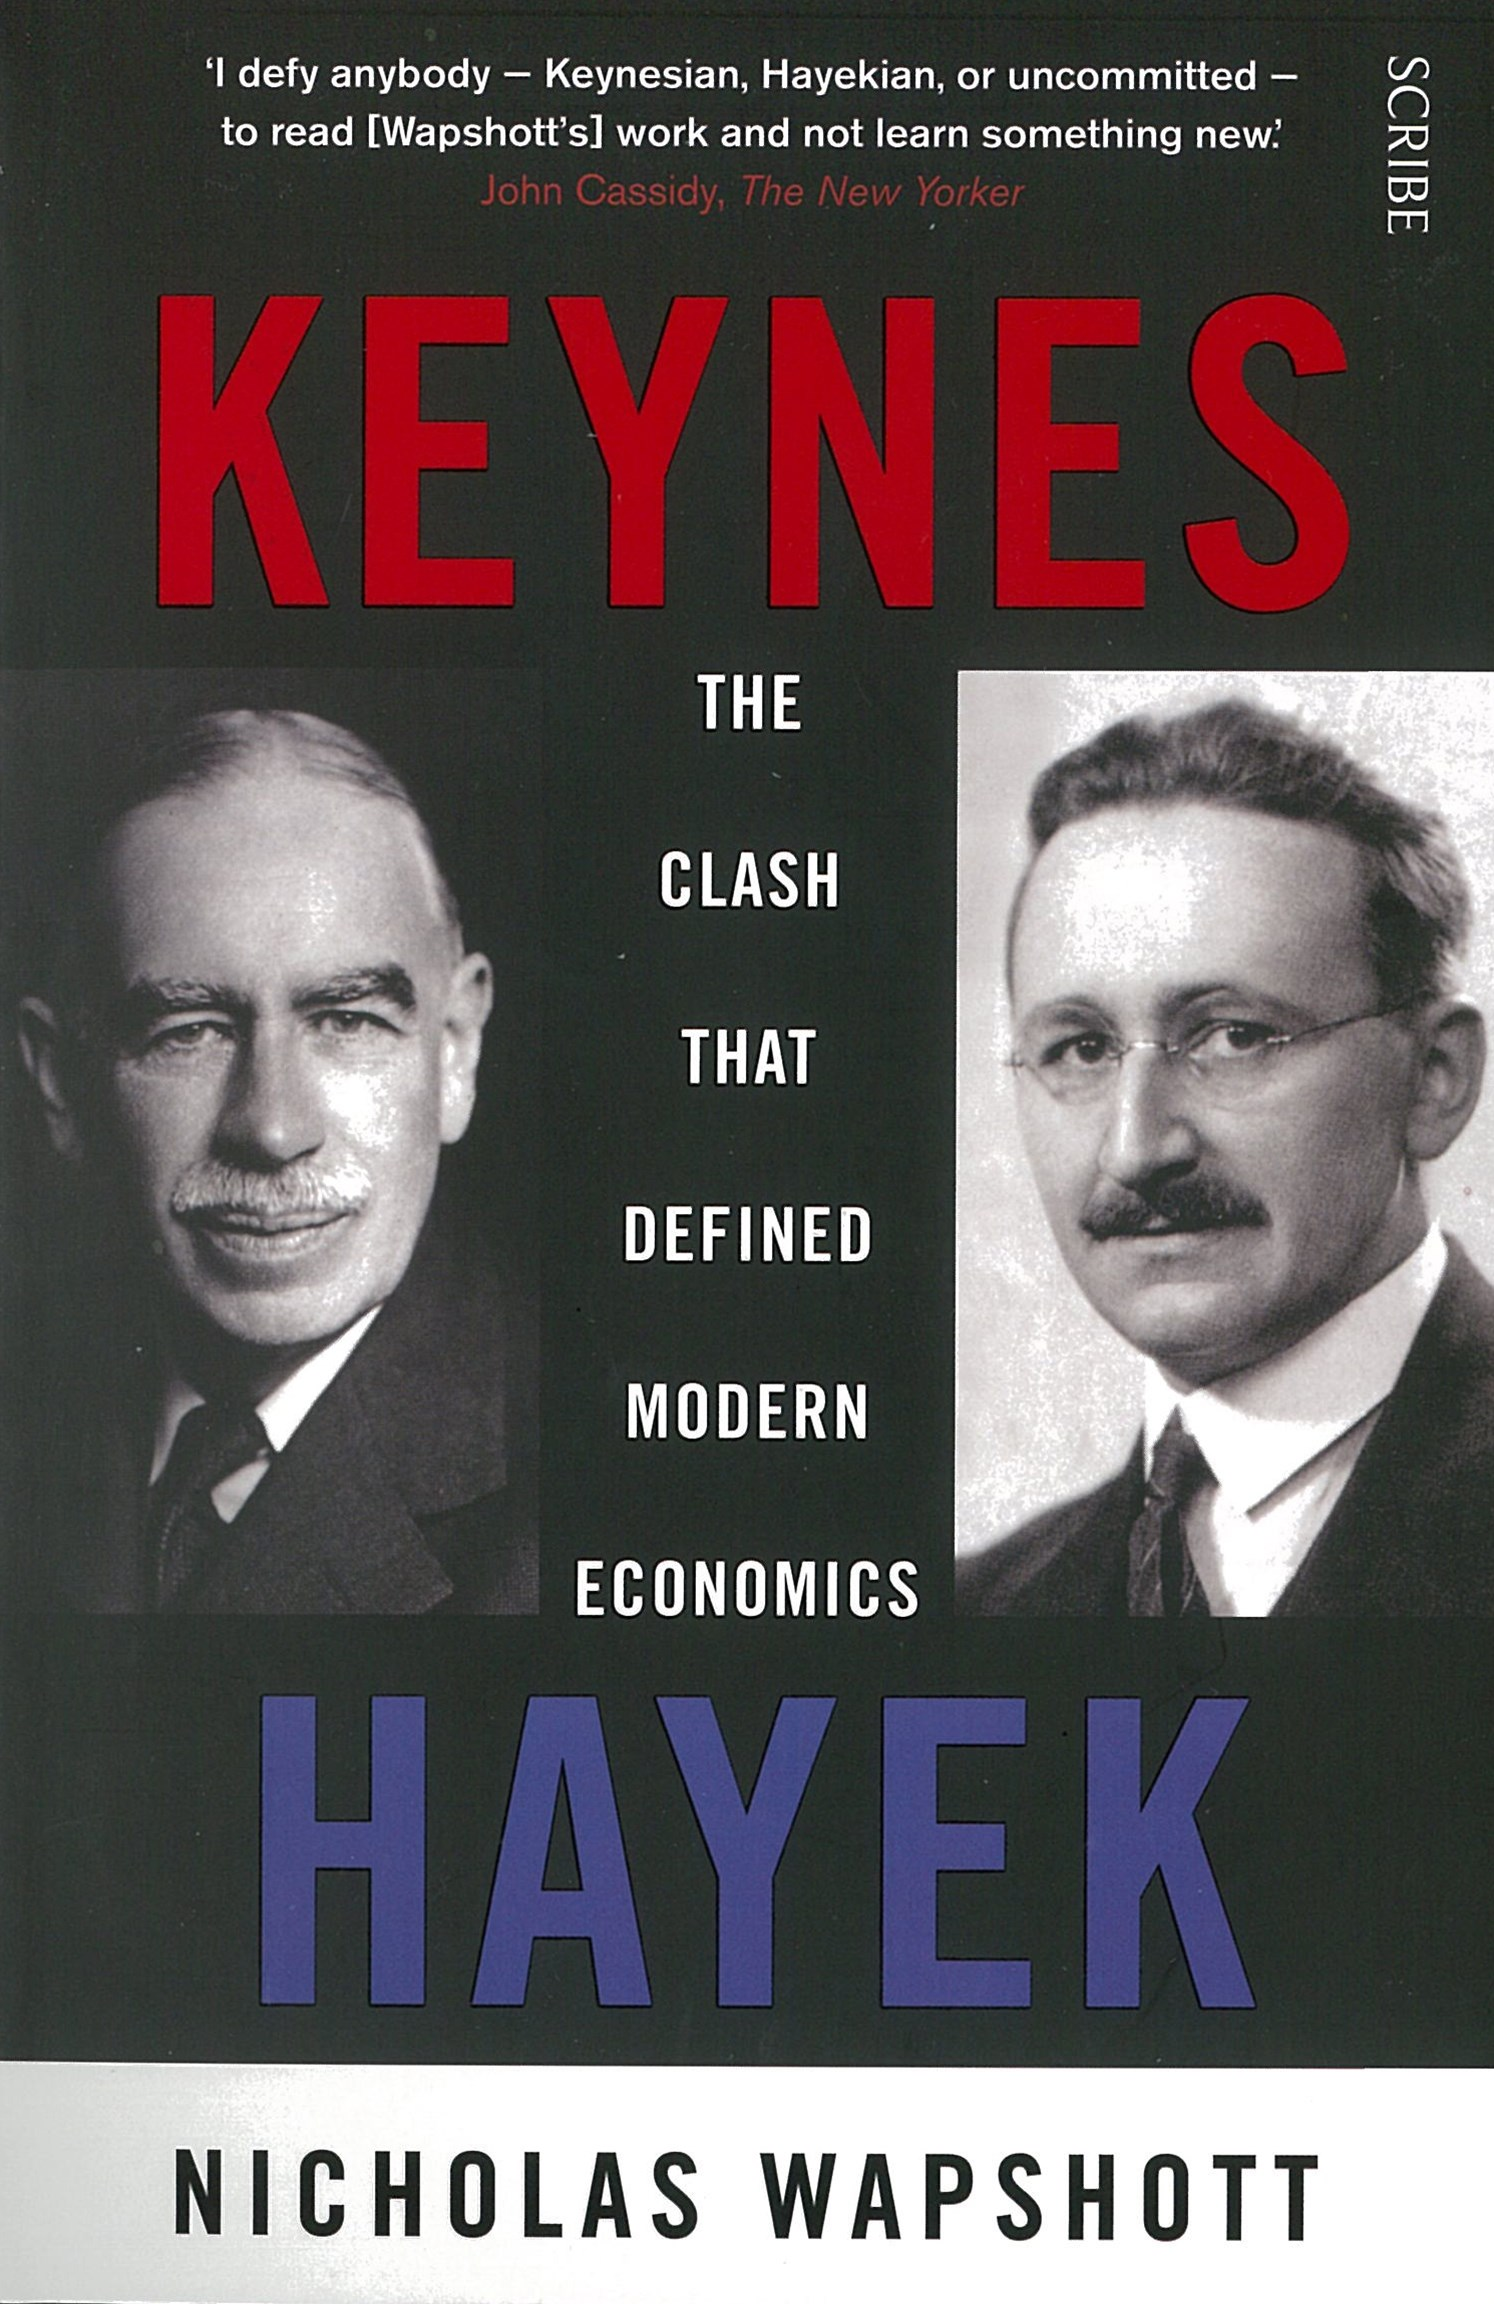 Keynes/Hayek: The Clash That Defined Modern Economics